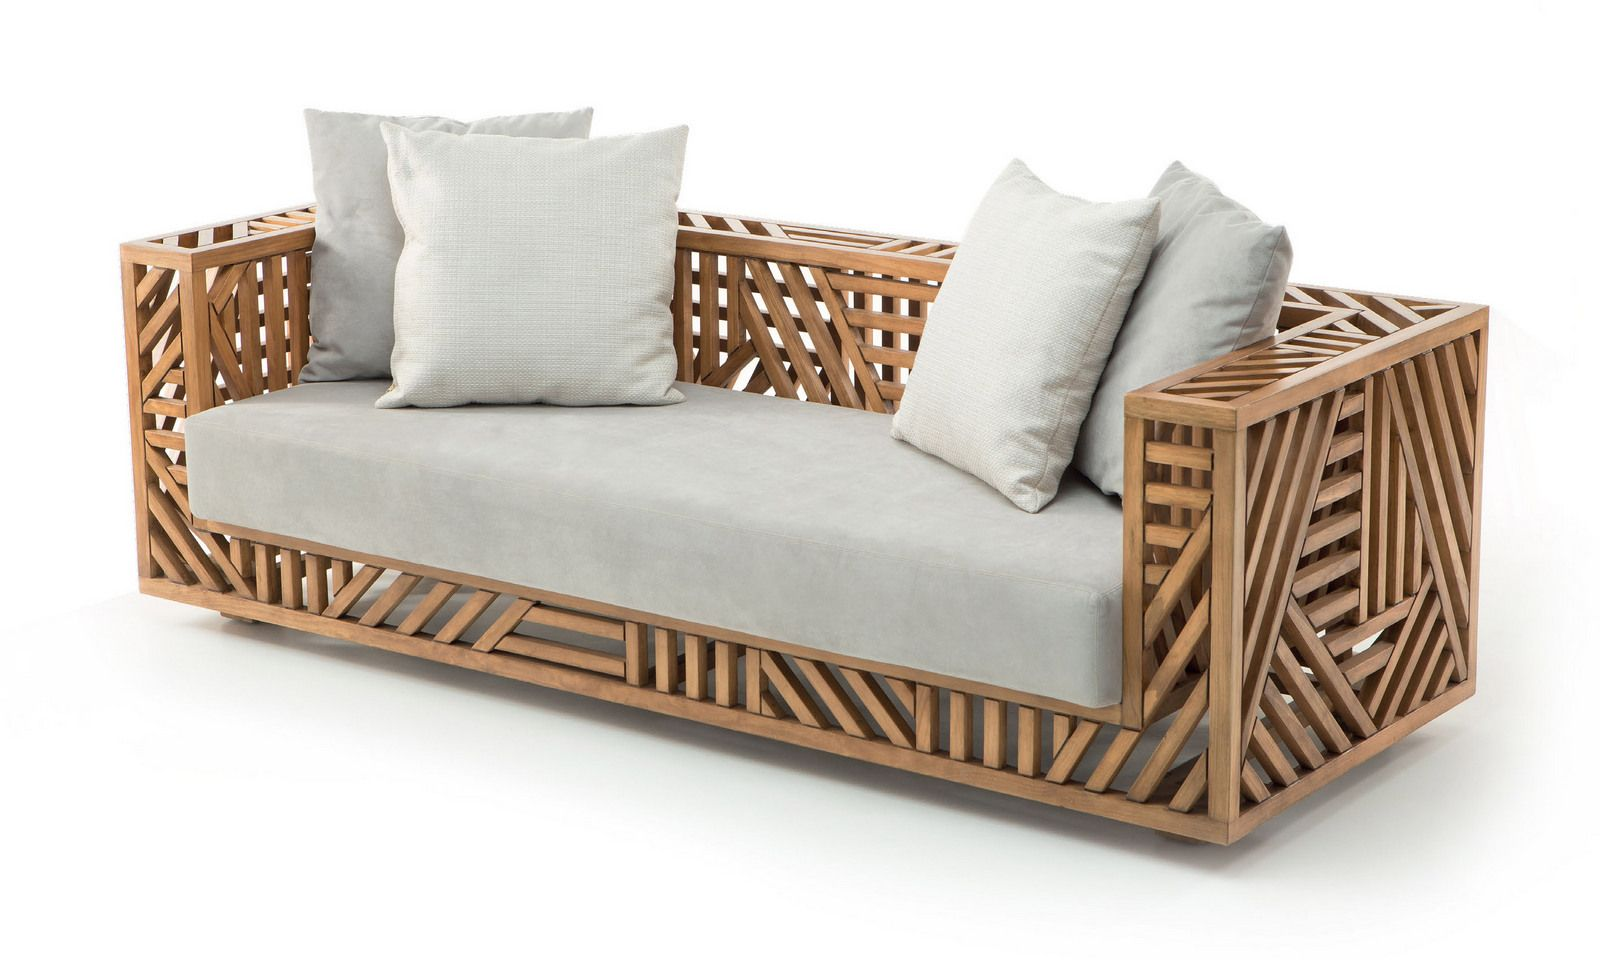 Wicker Sofa Set Philippines Couch Armrest Wrap Tray Table Ari 3 Seater By Vito Selma Philippine Furniture